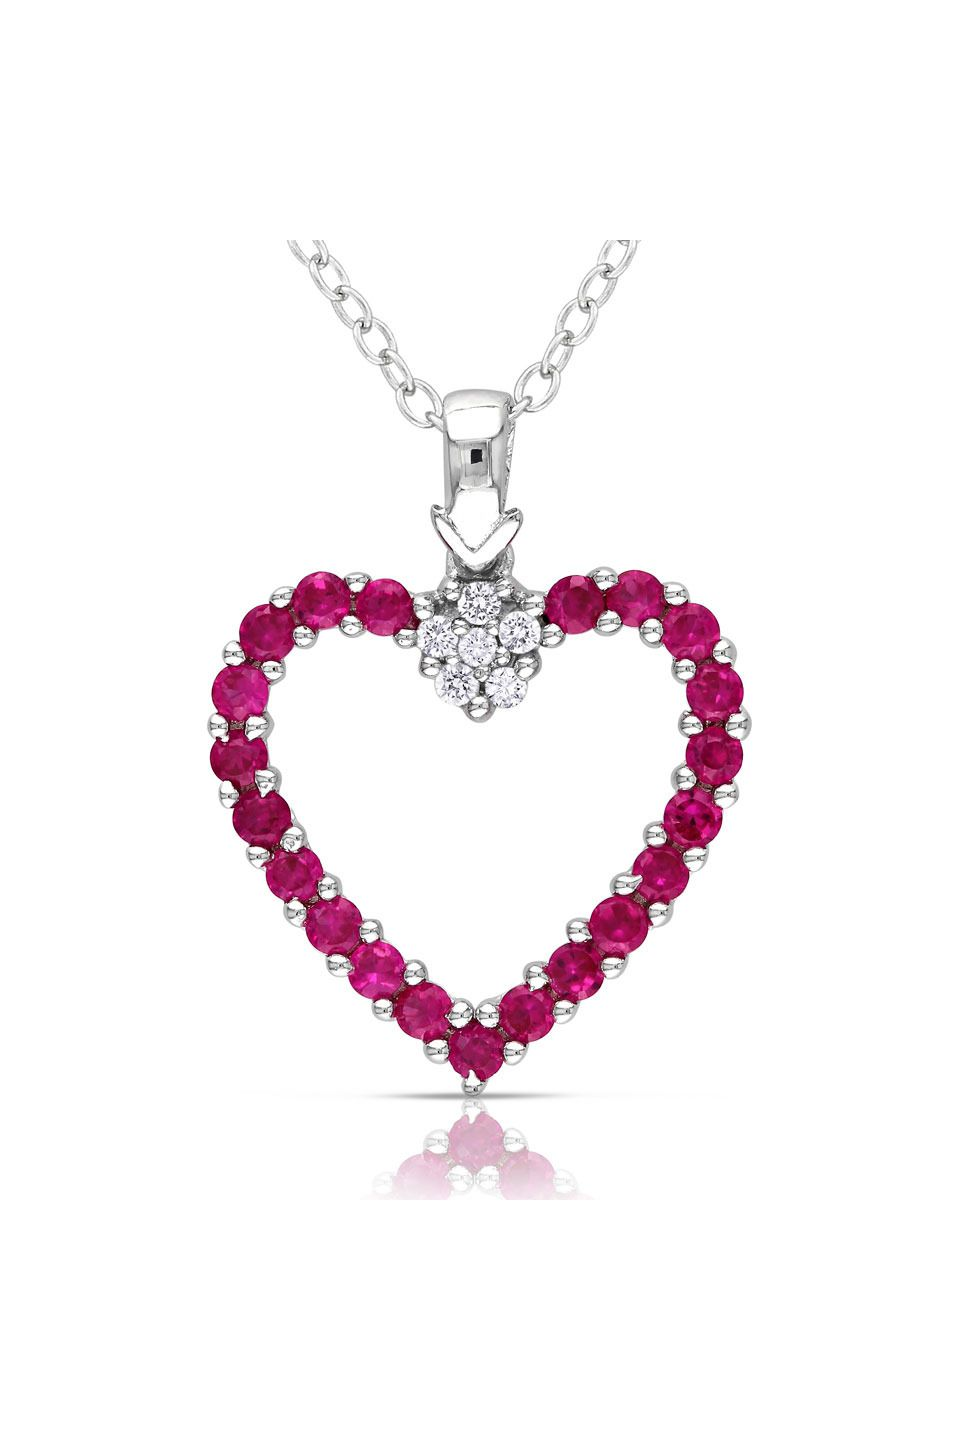 Ruby heart pendant jewelry u accessories pinterest pendants